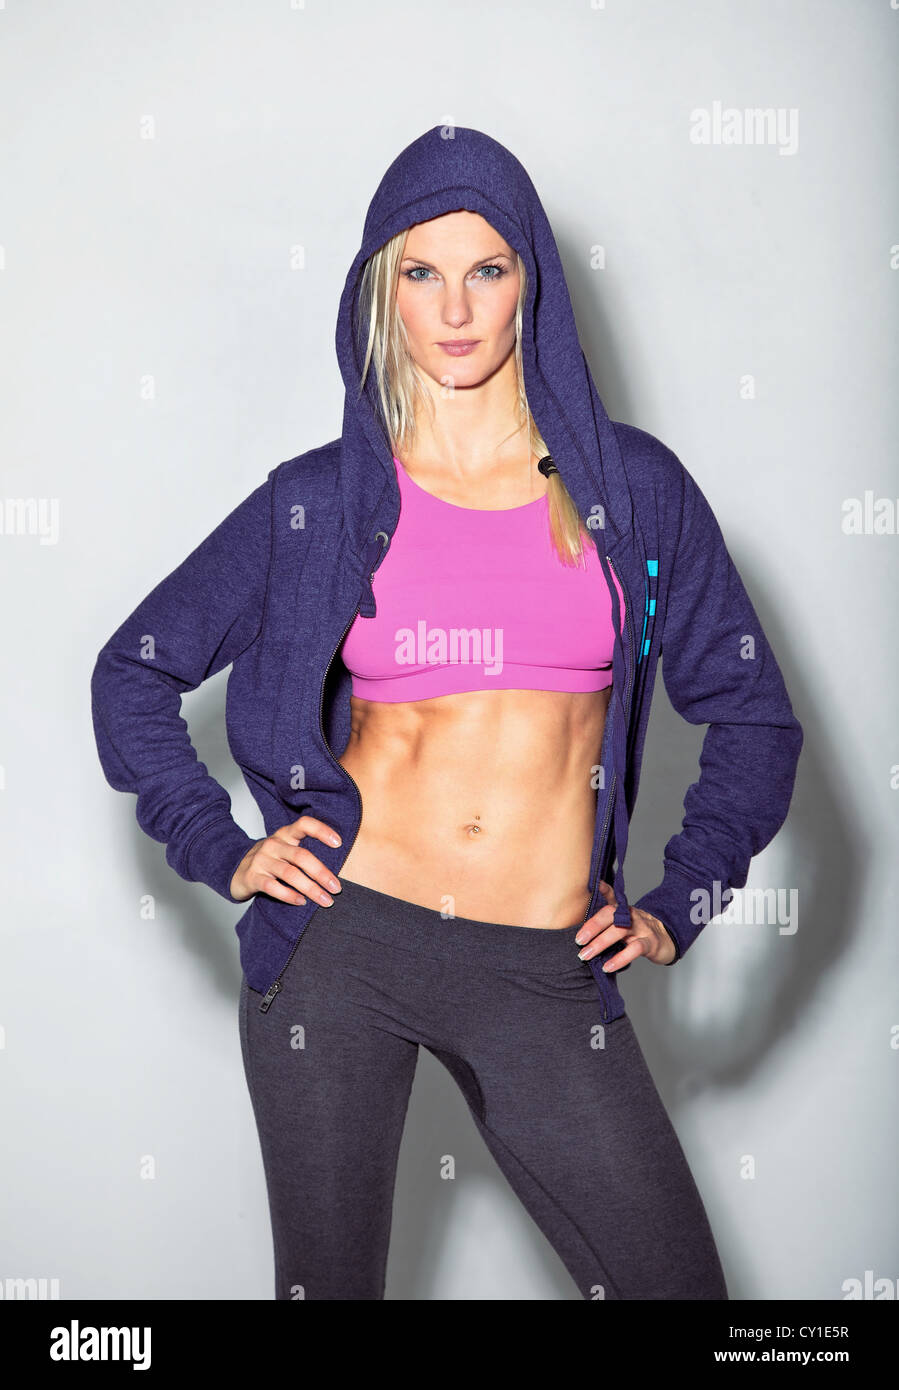 Confident woman in sportswear posing for camera against white background. Stock Photo